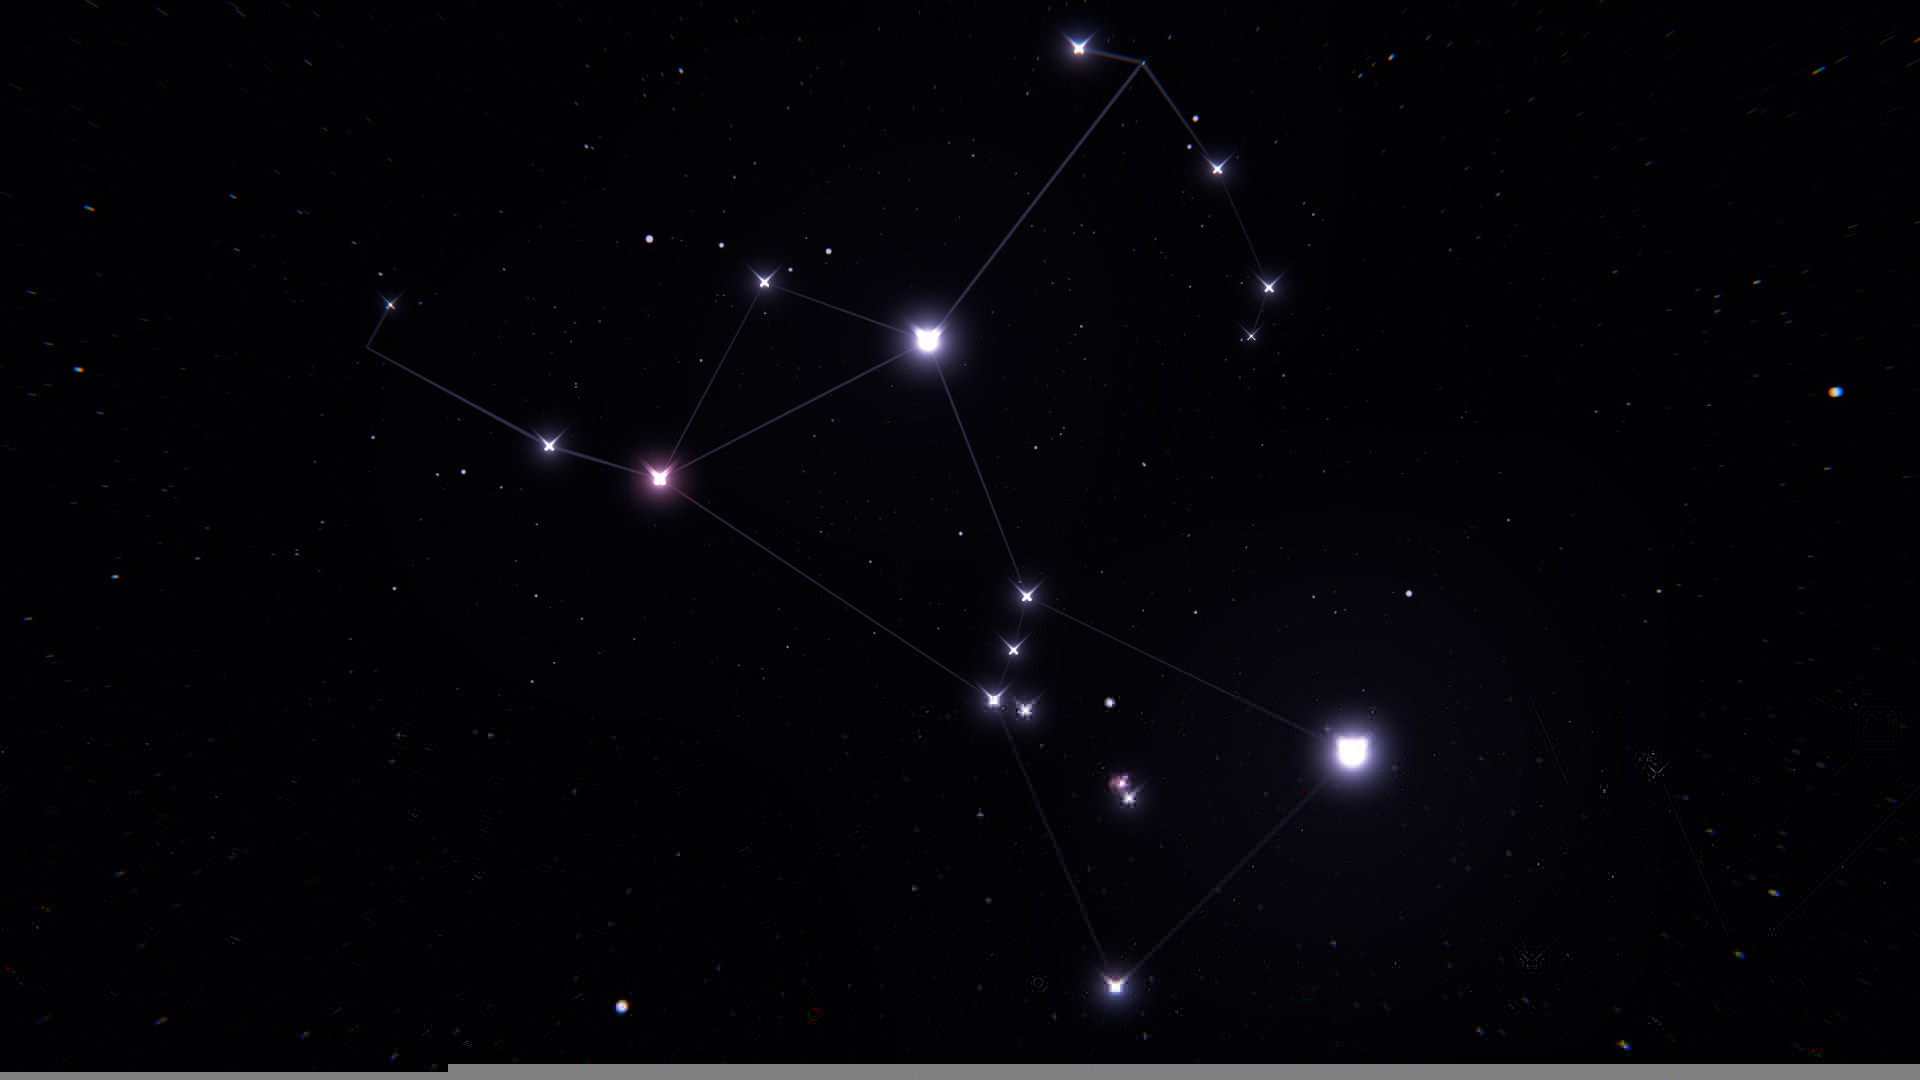 1920x1080 Wallpaper Orion Constellation Stars Space Wallpapers